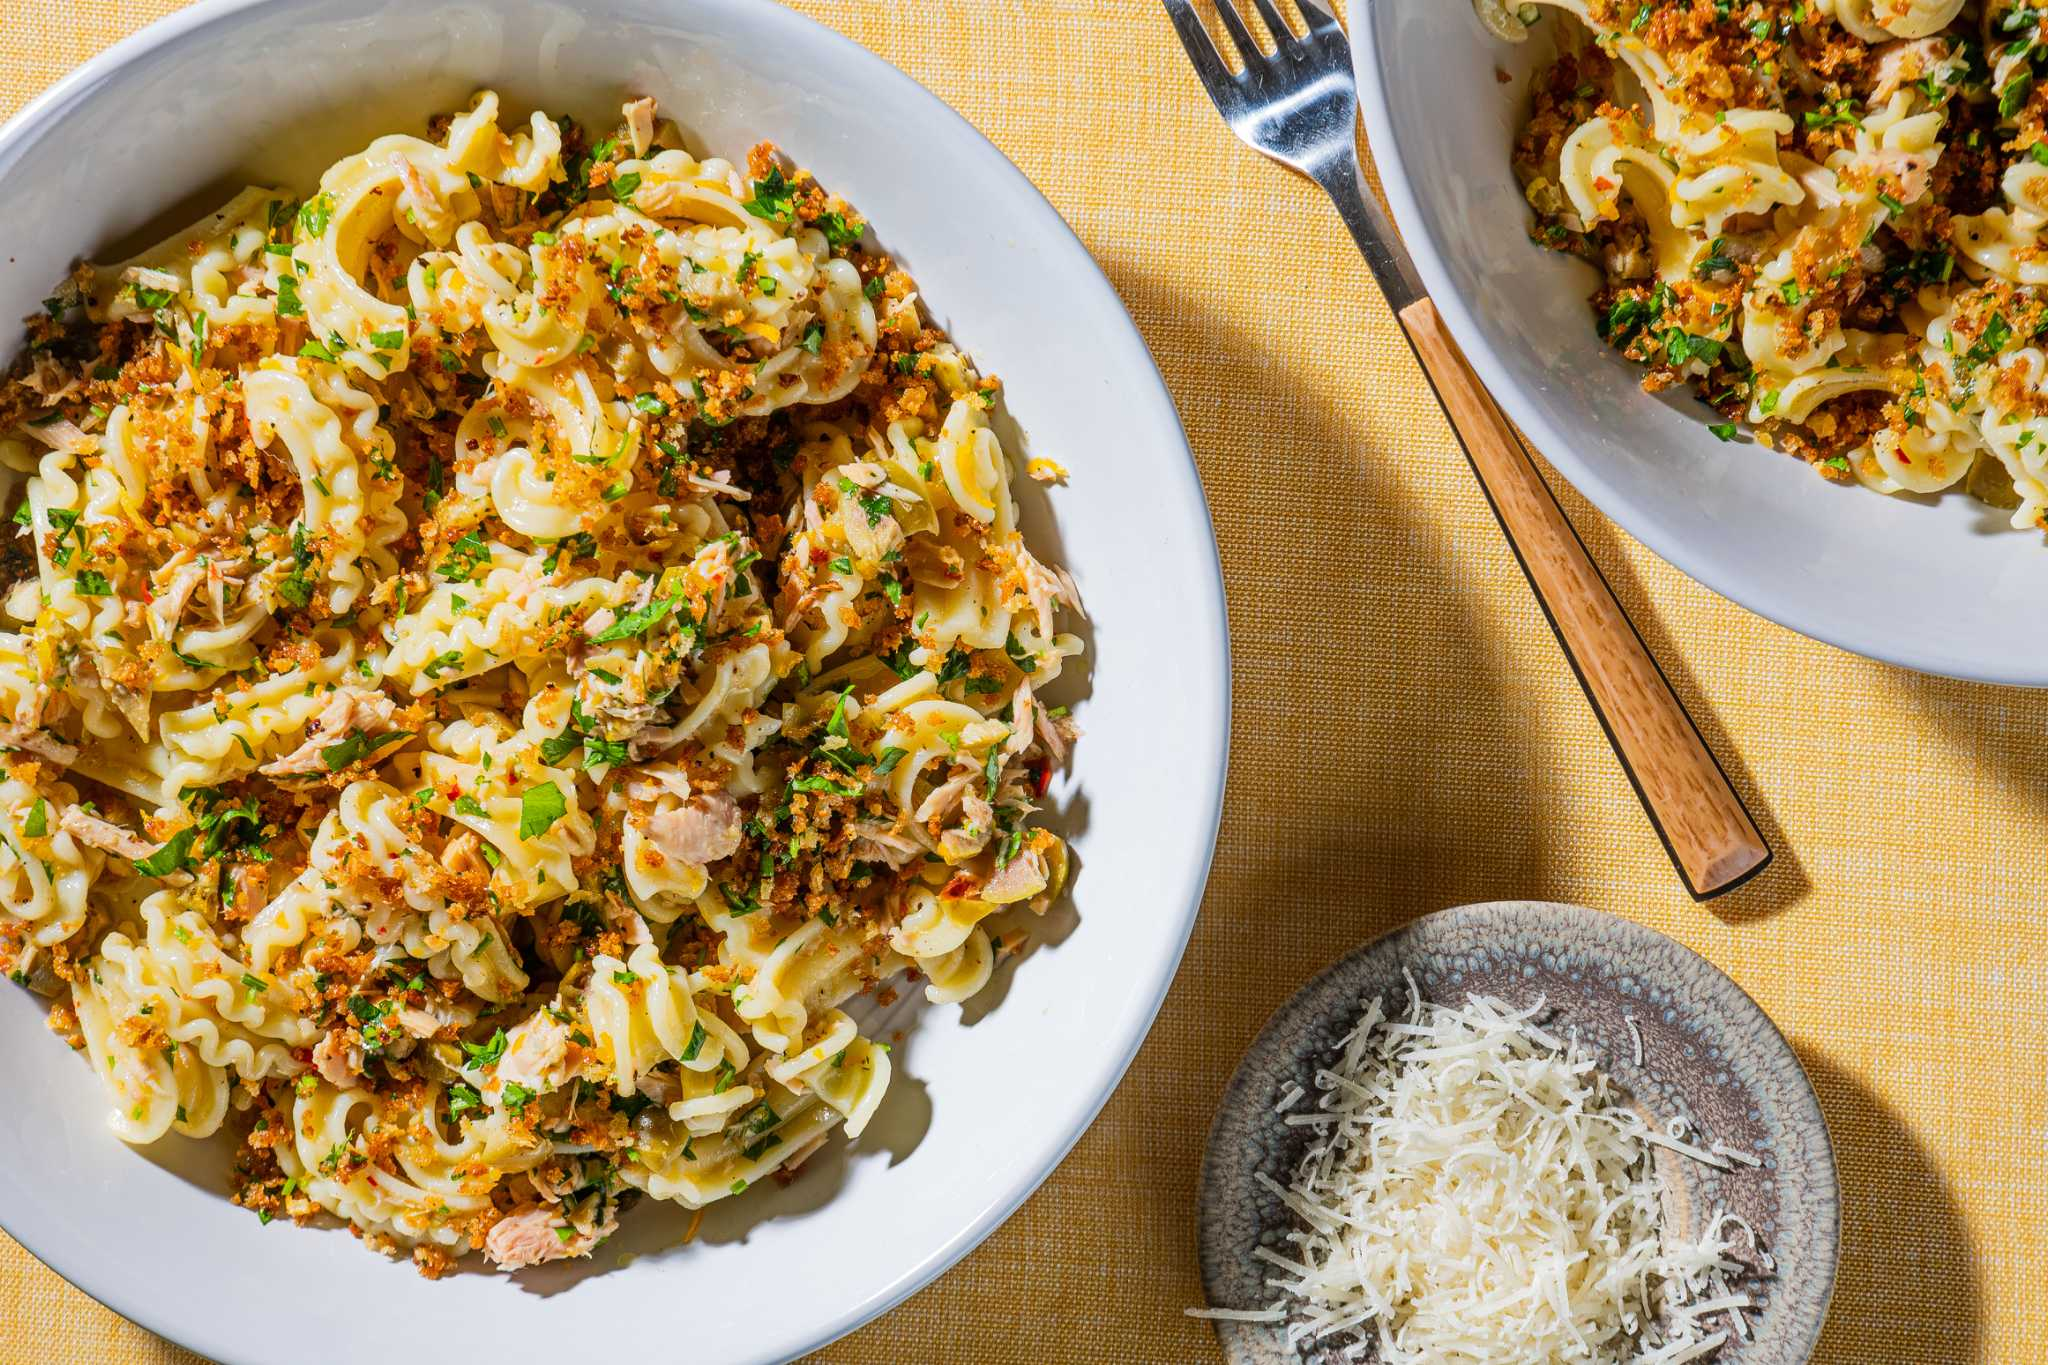 This pasta packs buttery olives, lemony tuna and garlicky breadcrumbs into every bite